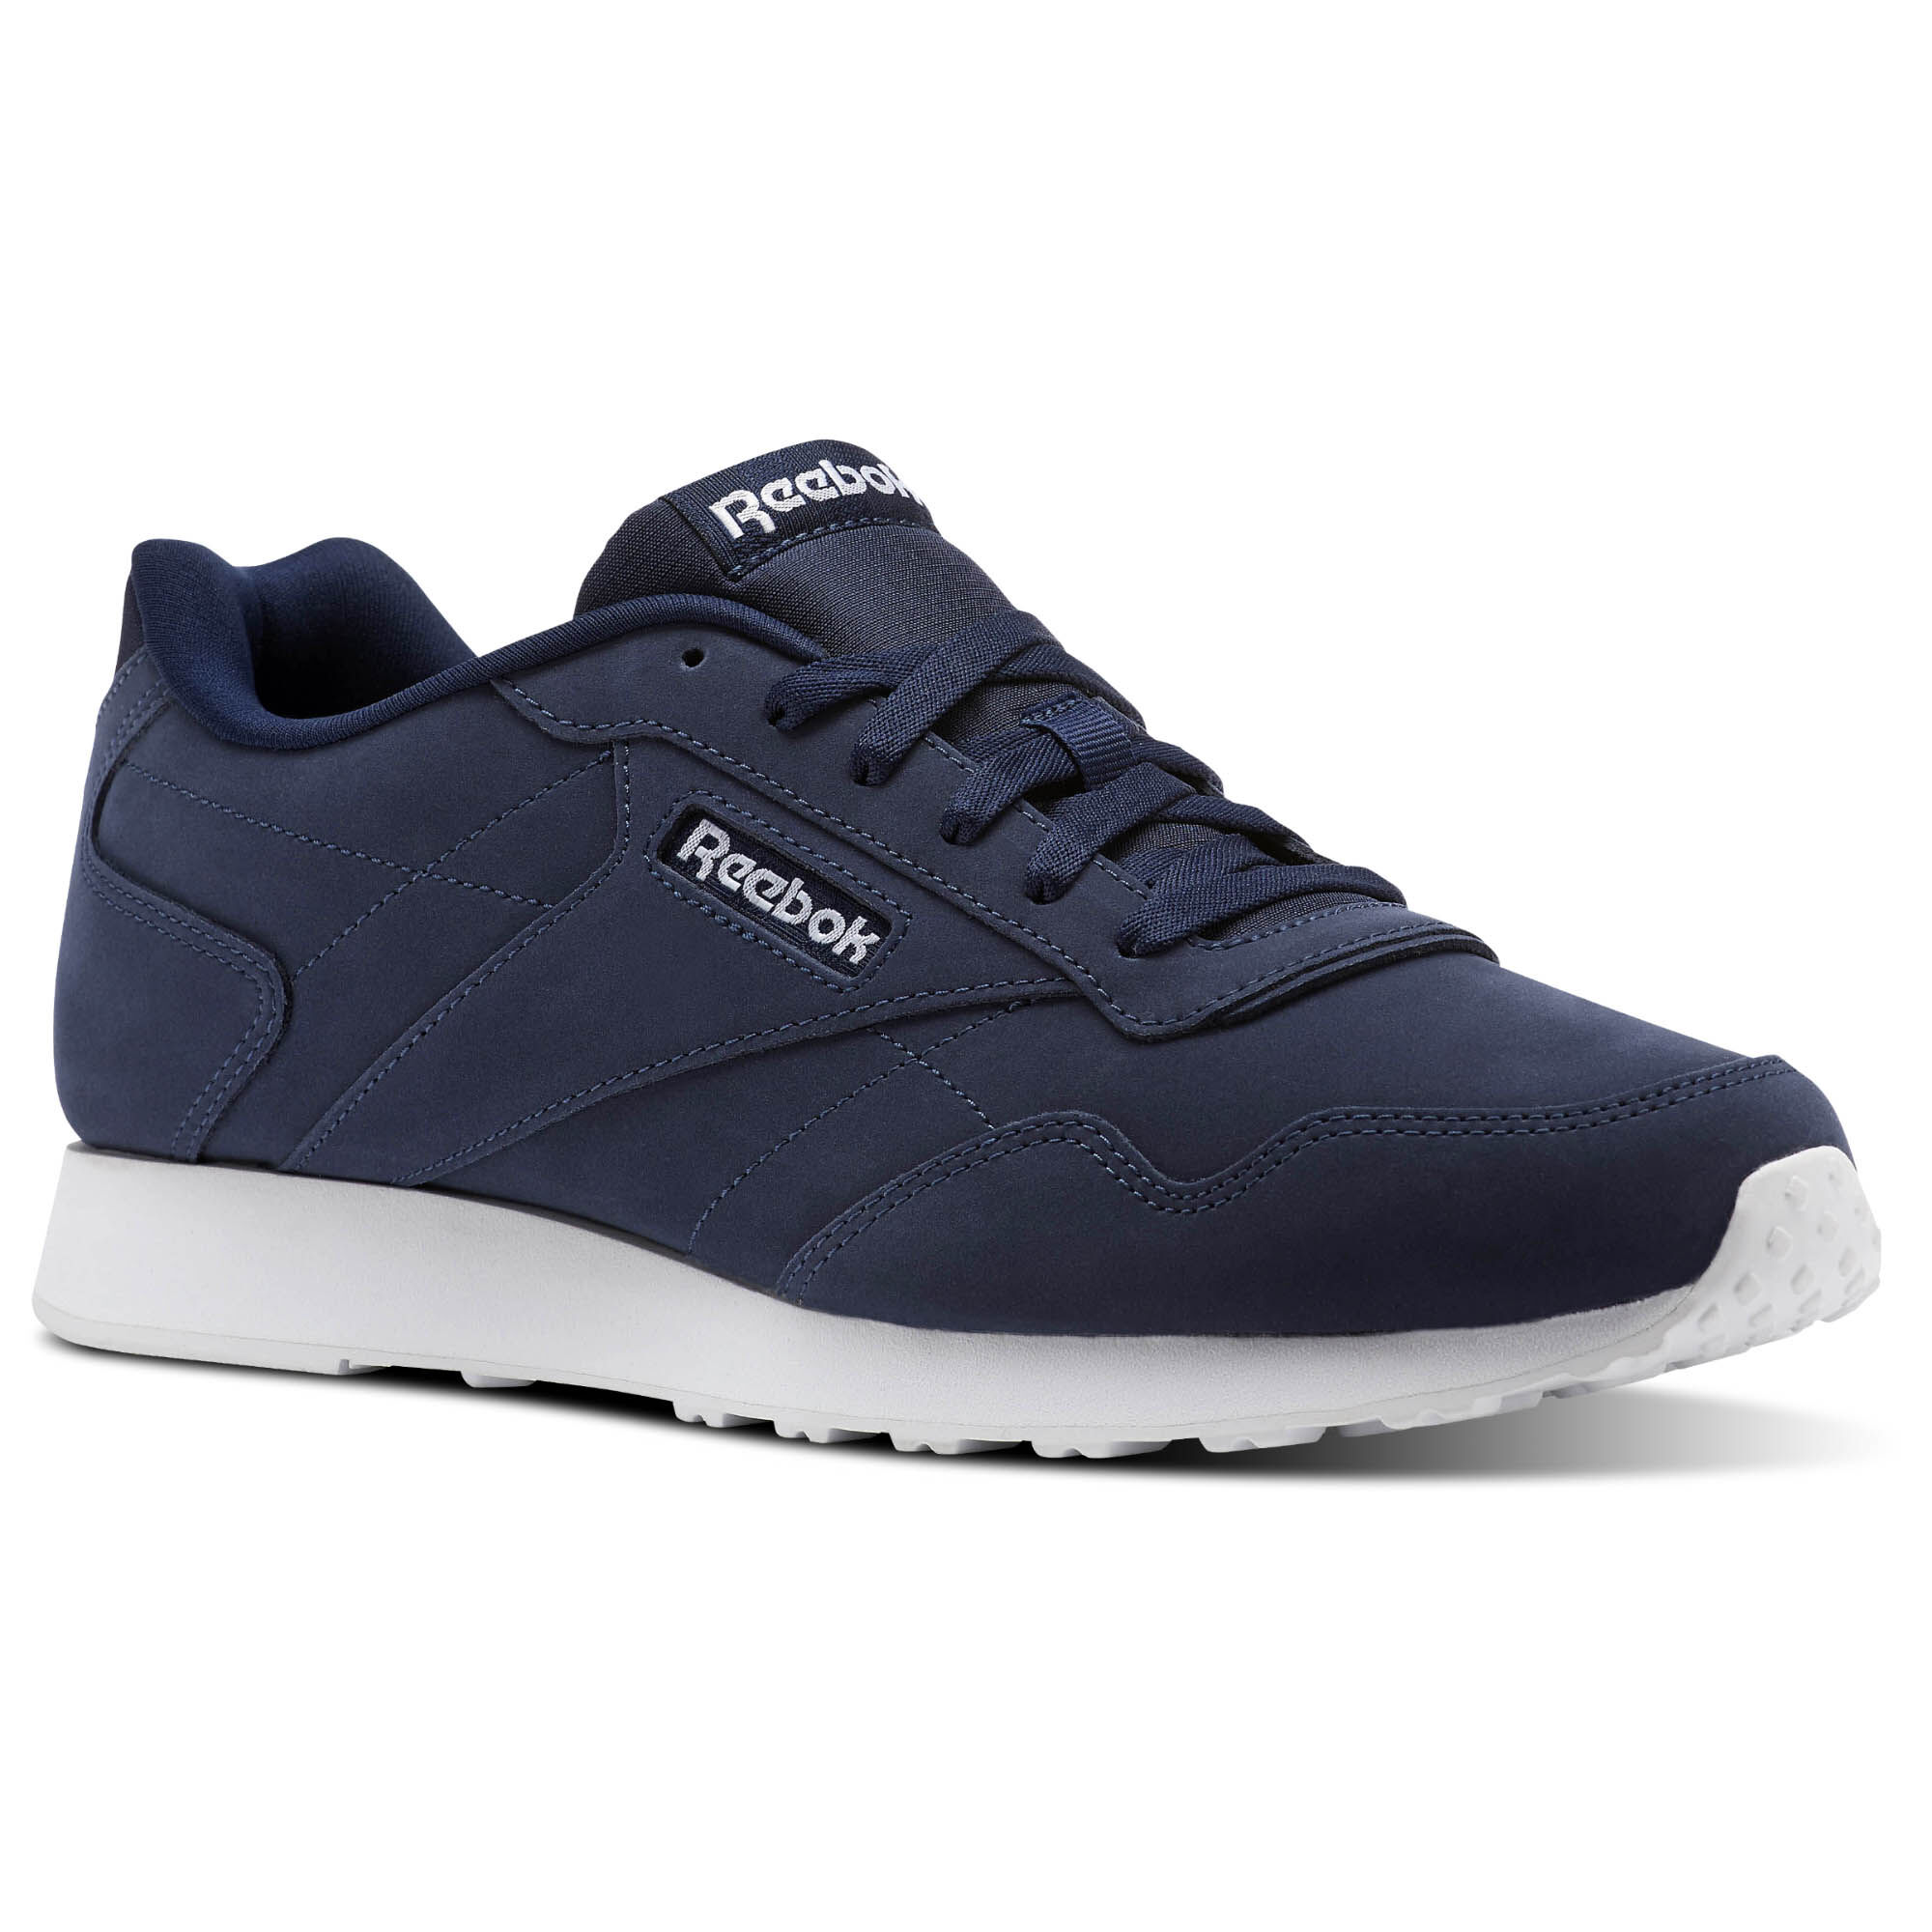 Reebok - Royal Glide LX Collegiate Navy/White CM9740